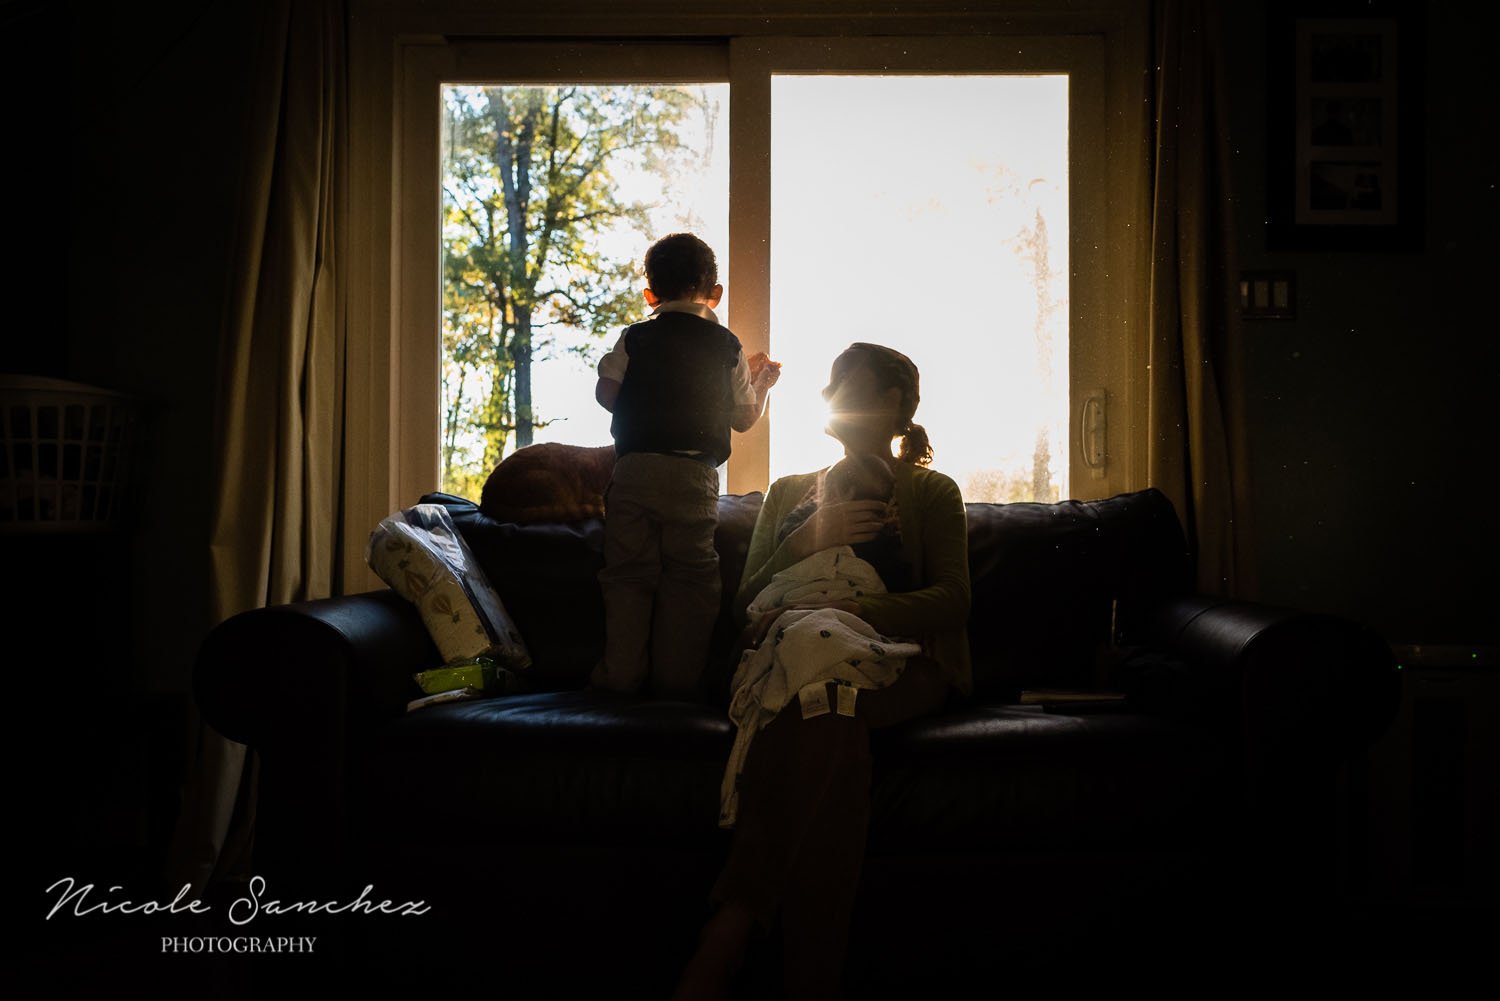 365-project-favorites-november-nicole-sanchez-northern-virginia-family-photographer-7.jpg